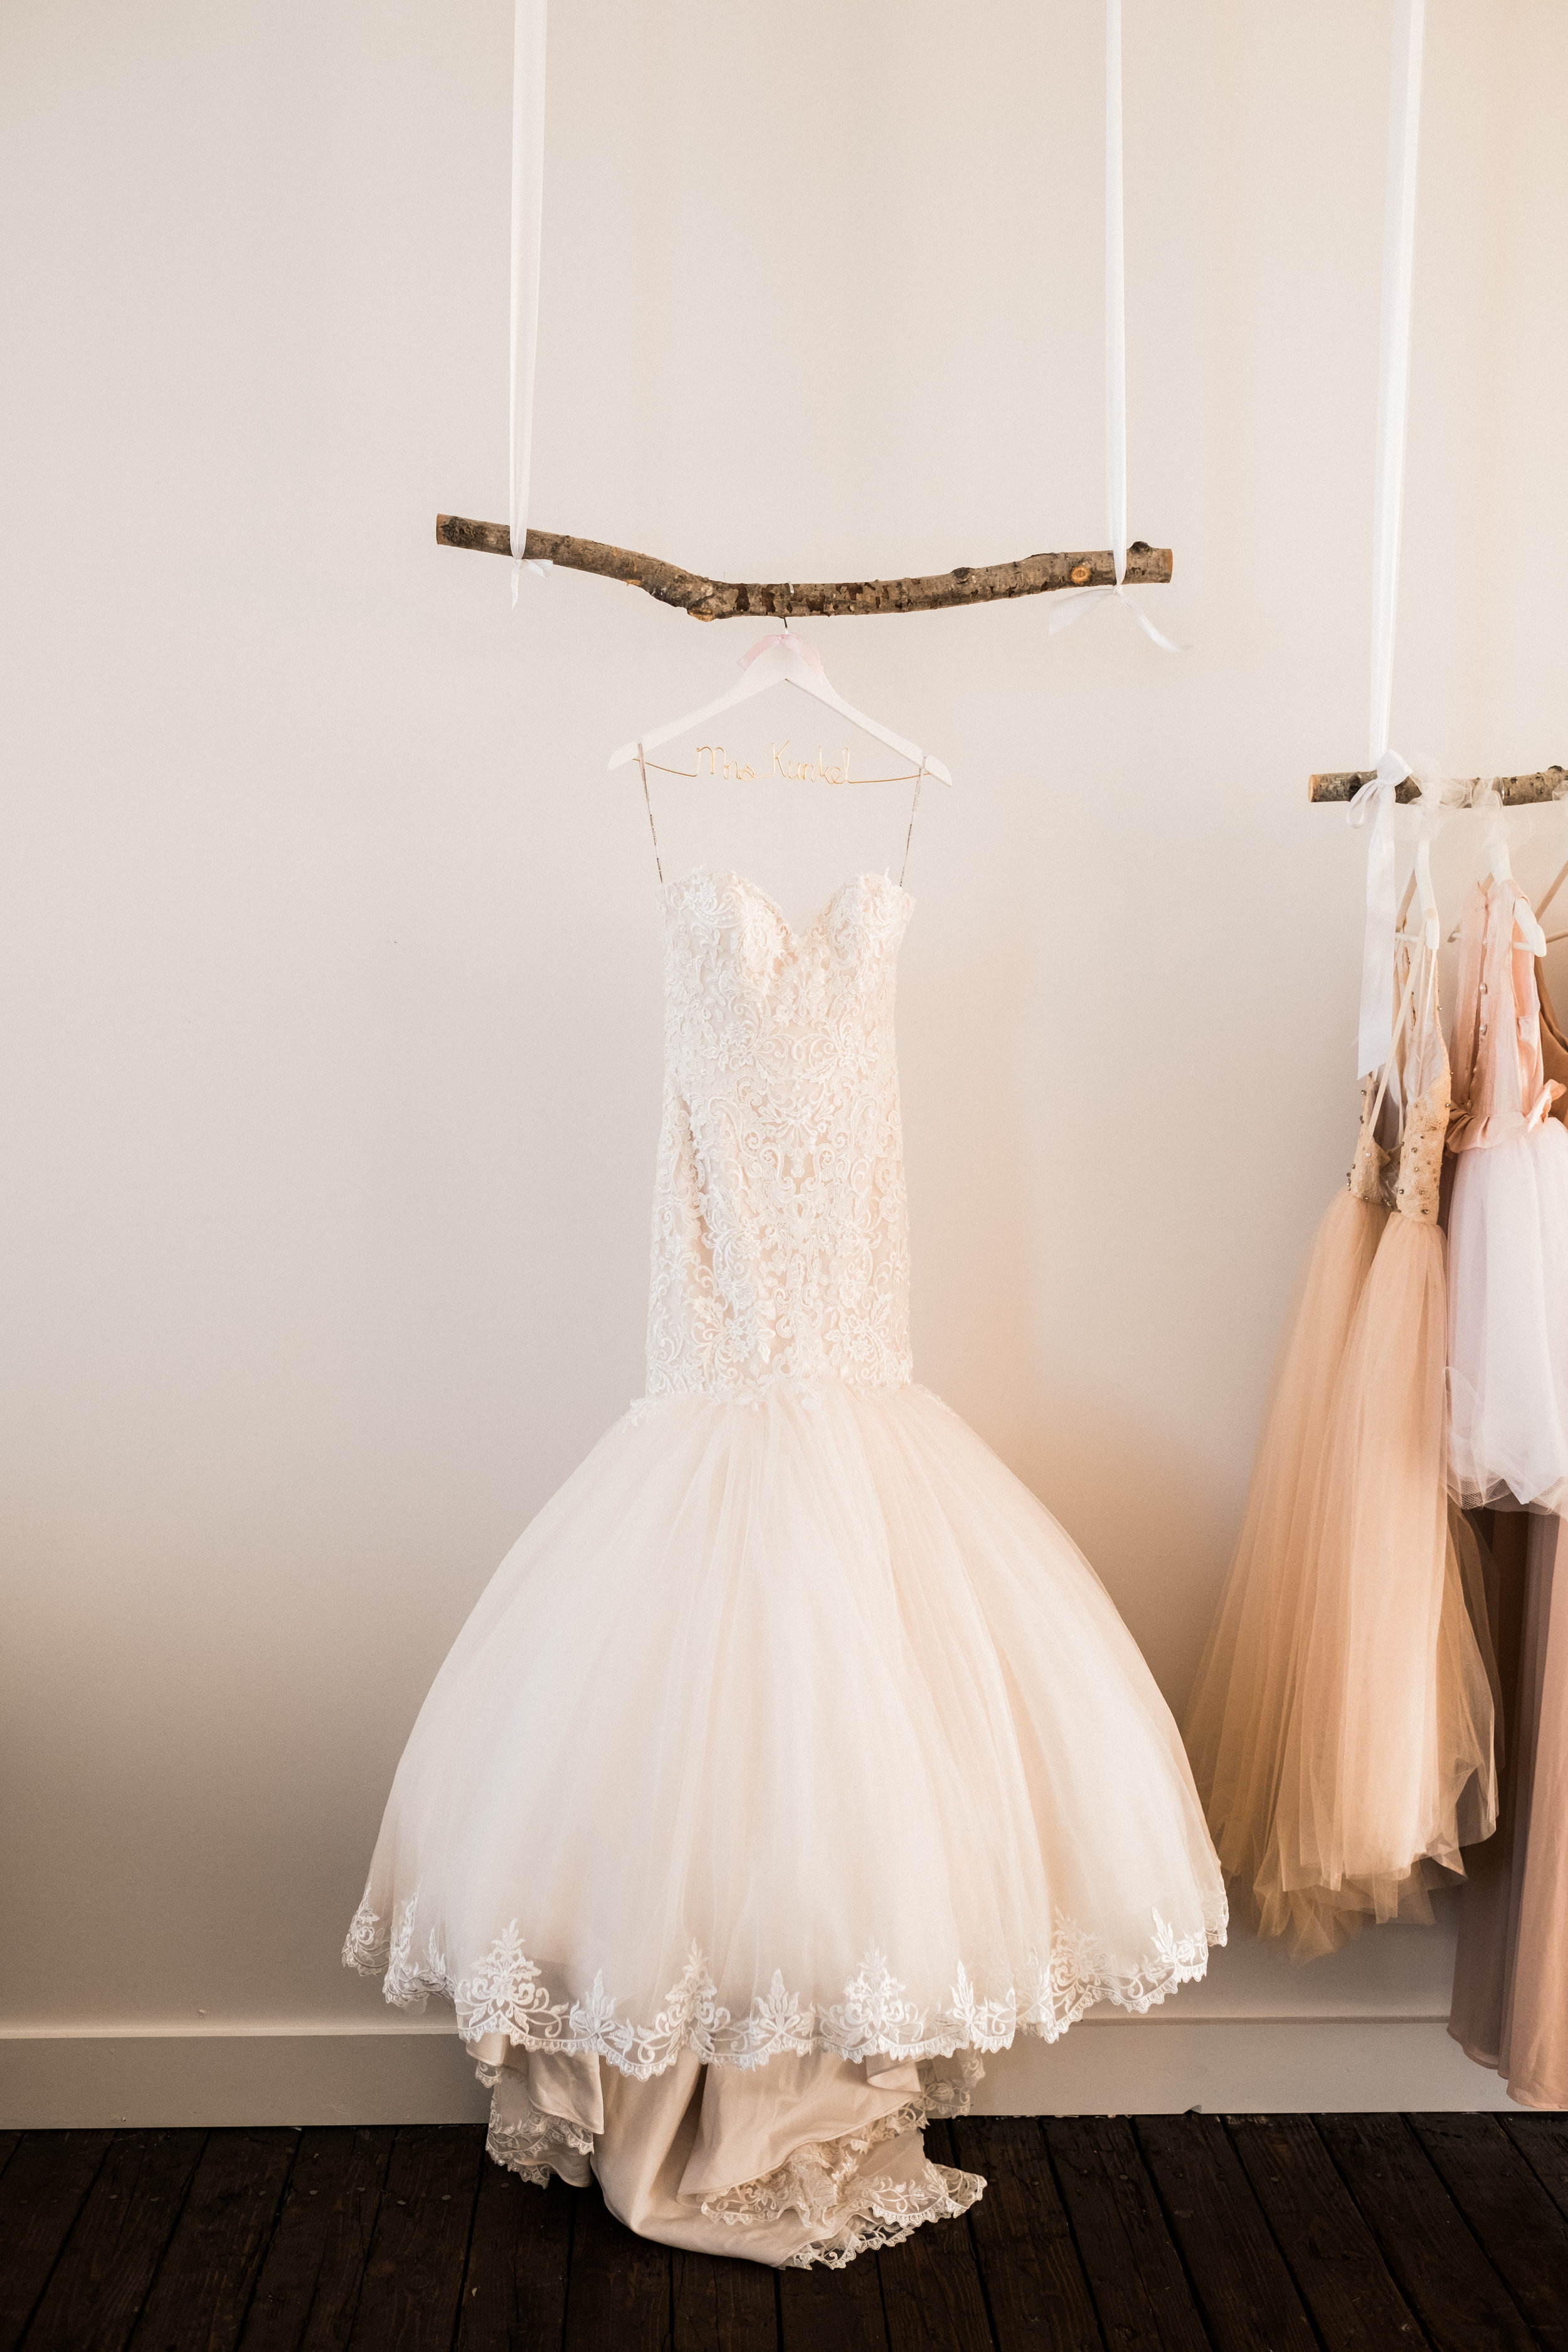 Wedding dress hanging in the bridal suite at the NP Space in Brainerd